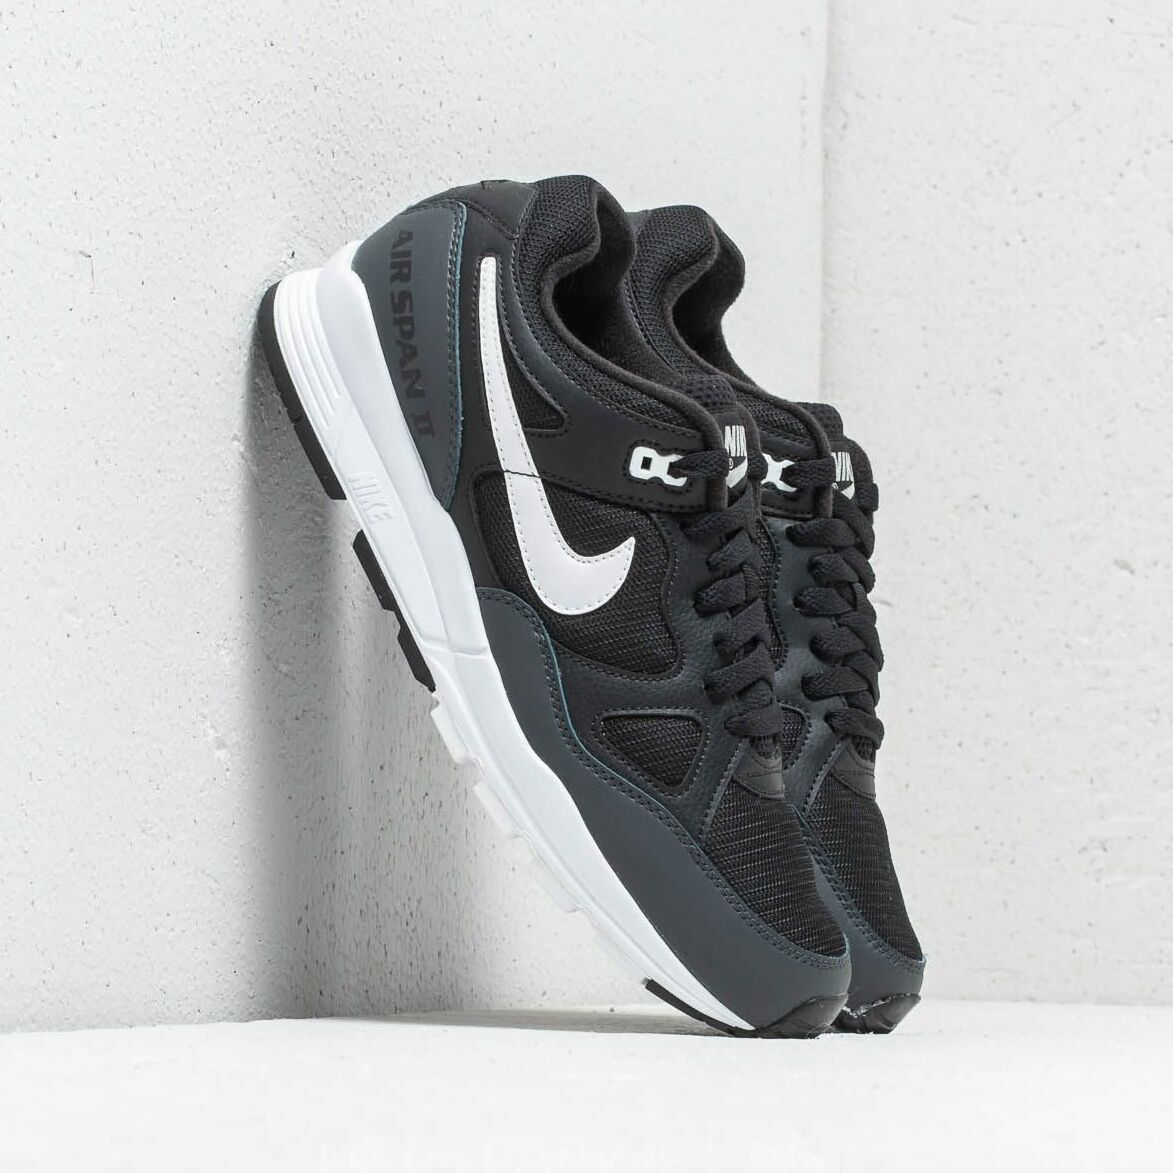 Nike Air Span II Black/ White-Anthracite EUR 41